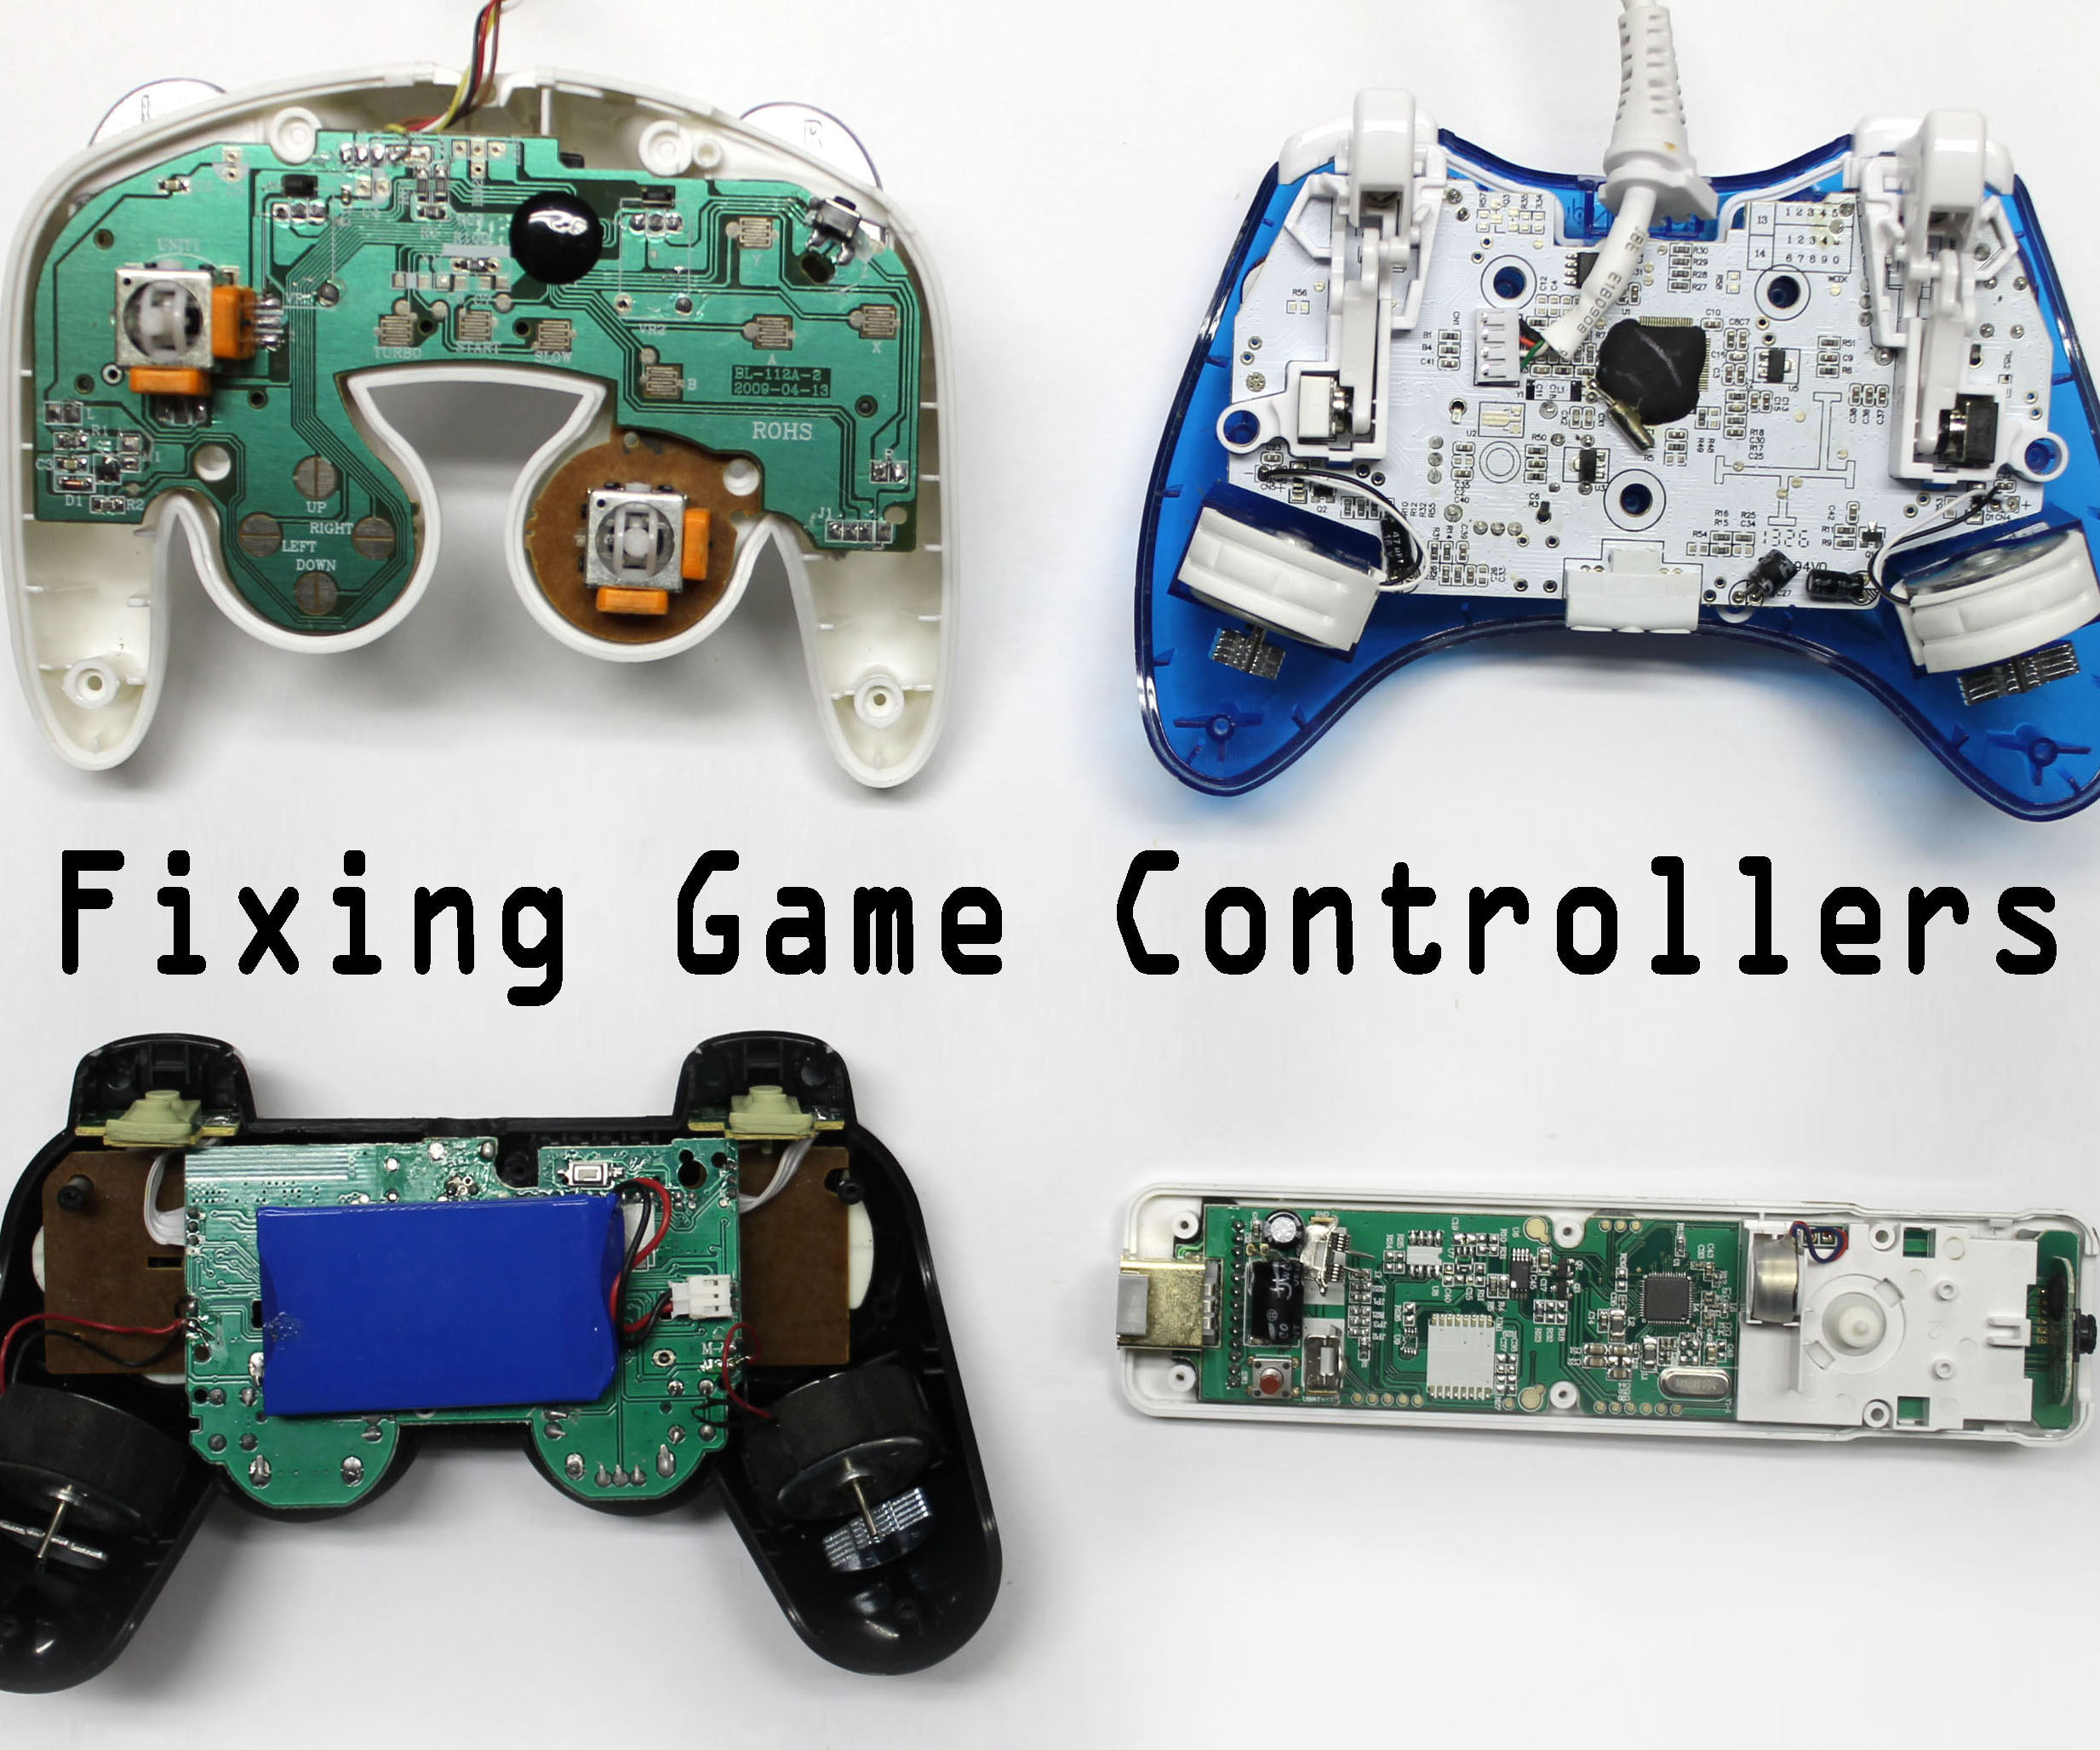 N64 Controller Wiring Diagram Electrical Diagrams Xbox 360 Wireless Trusted Inside Of An